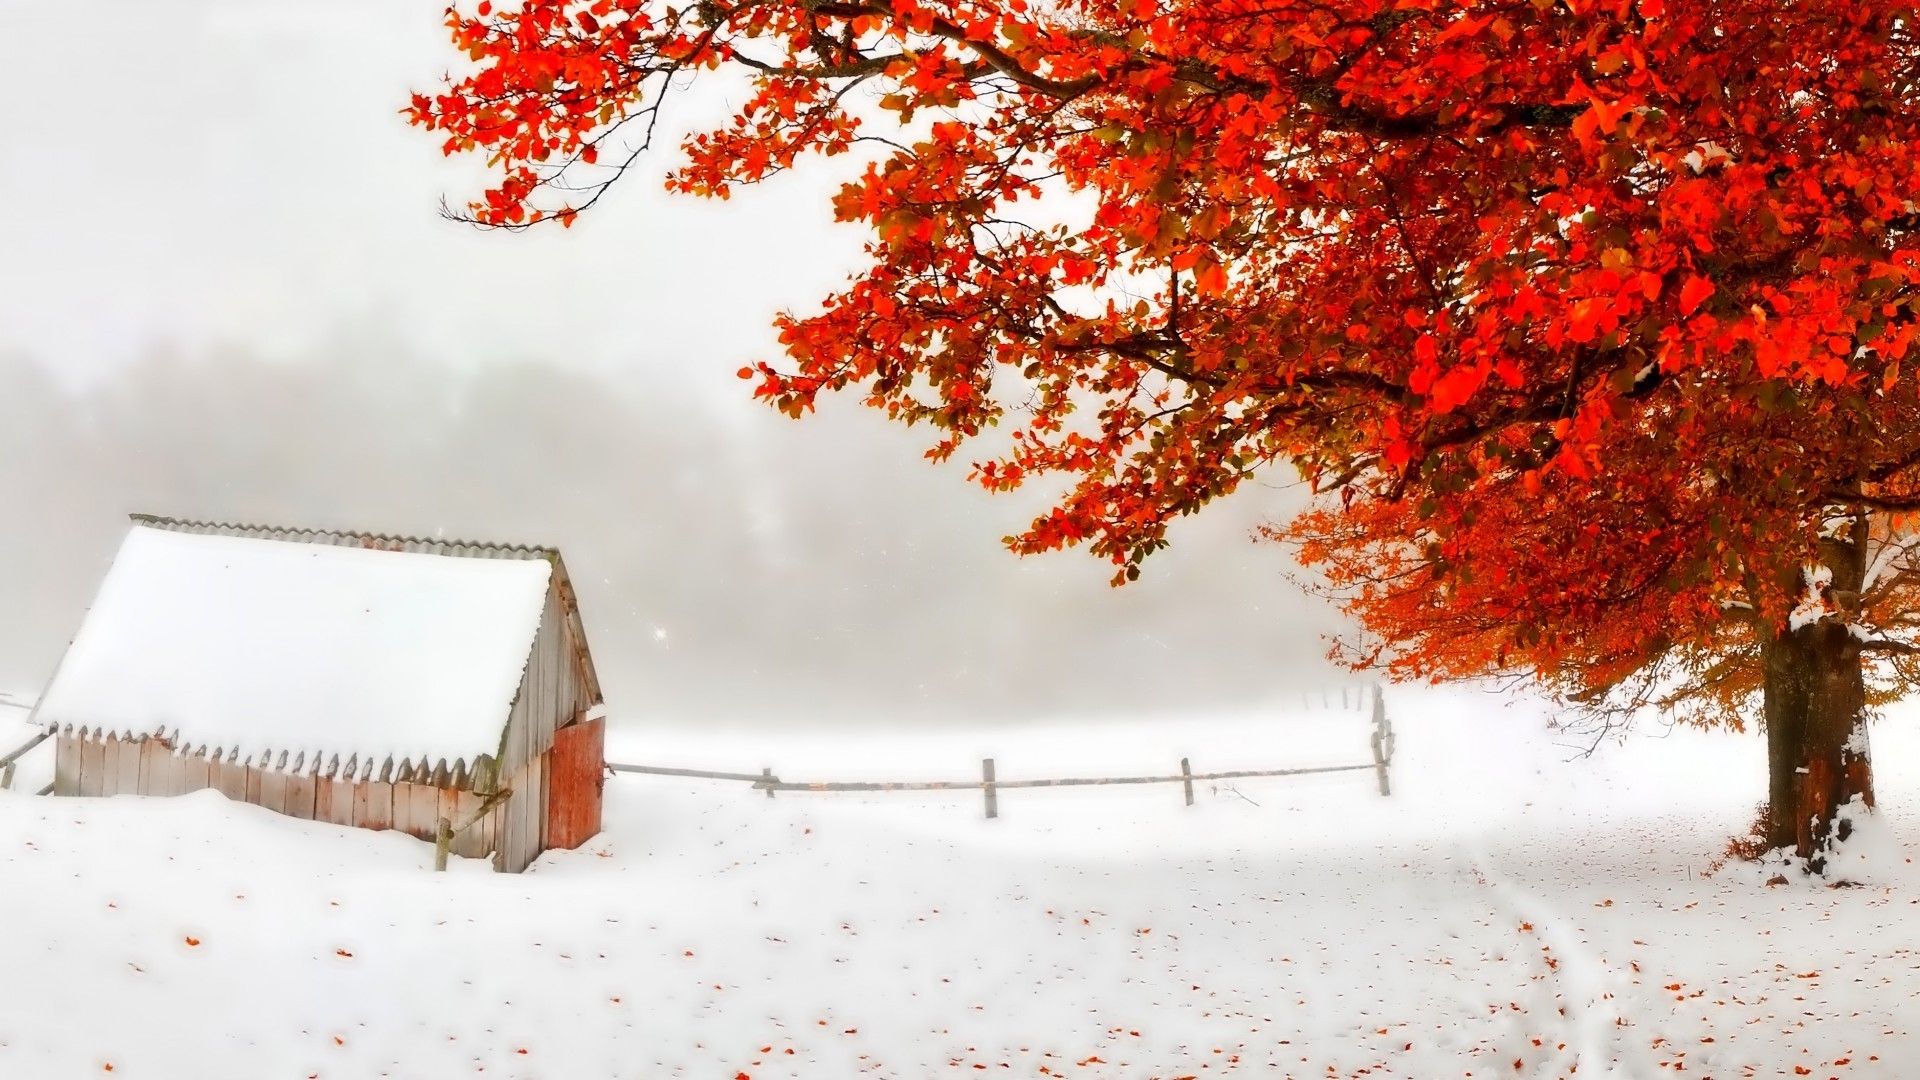 Storm Shack Tree Red Snow Leaves Early Autumn Countryside Winter Wallpaper  For Desktop Background Detail